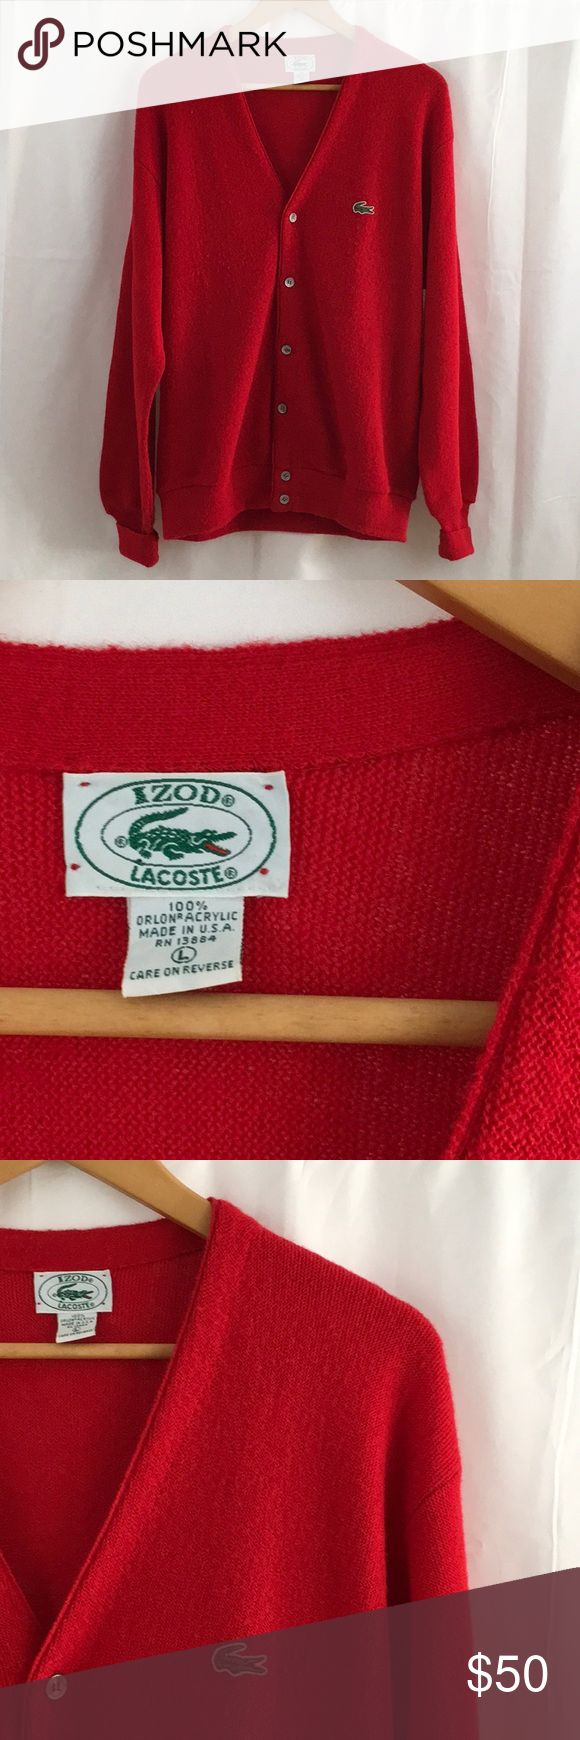 Vintage Izod Lacoste Cardigan Vintage Izod Lacoste Cardigan size large. Not faded, in really good condition Lacoste Sweaters Cardigan